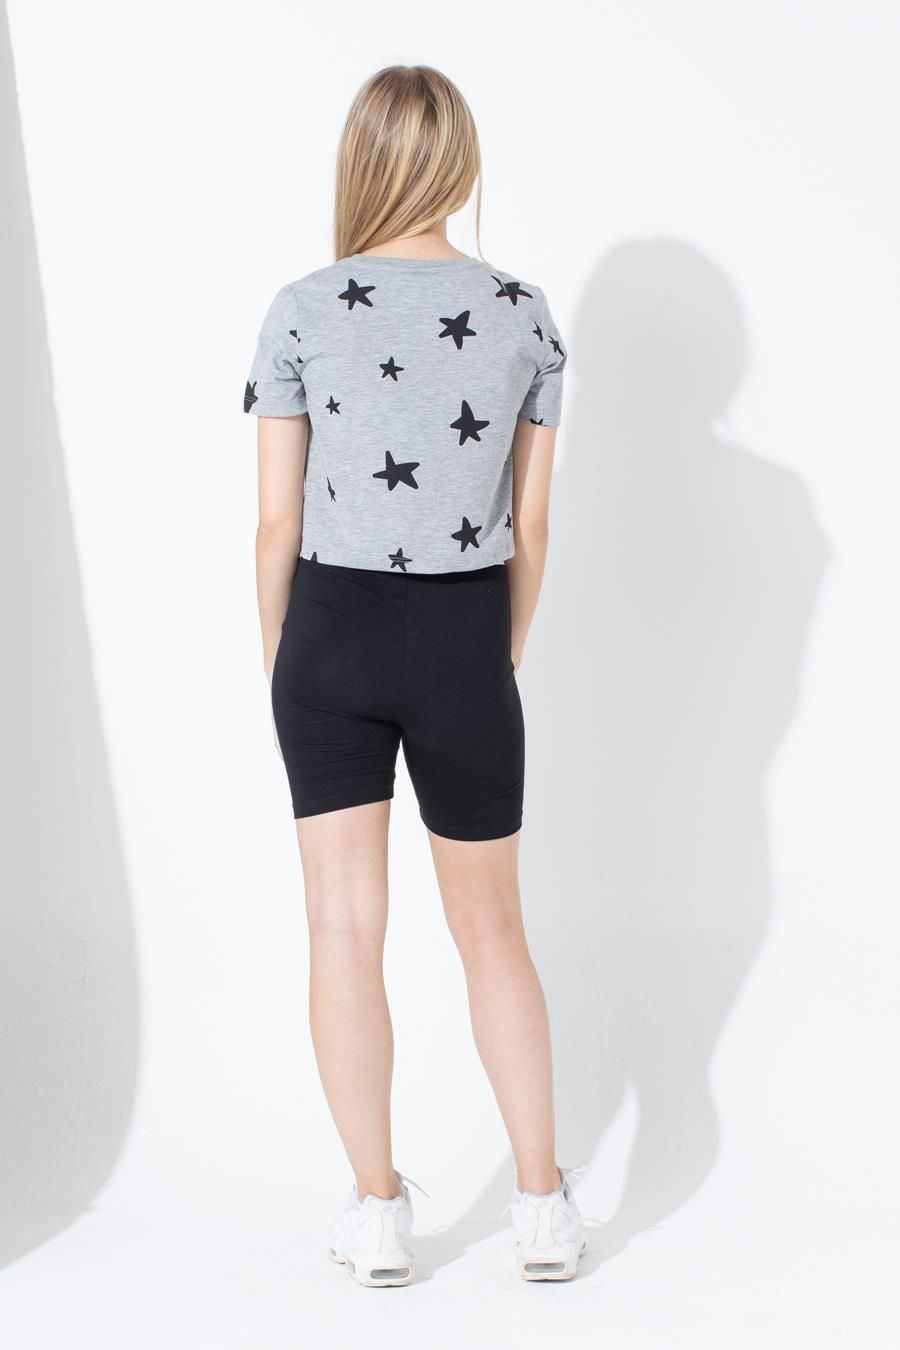 Hype Star Kids Crop T-Shirt